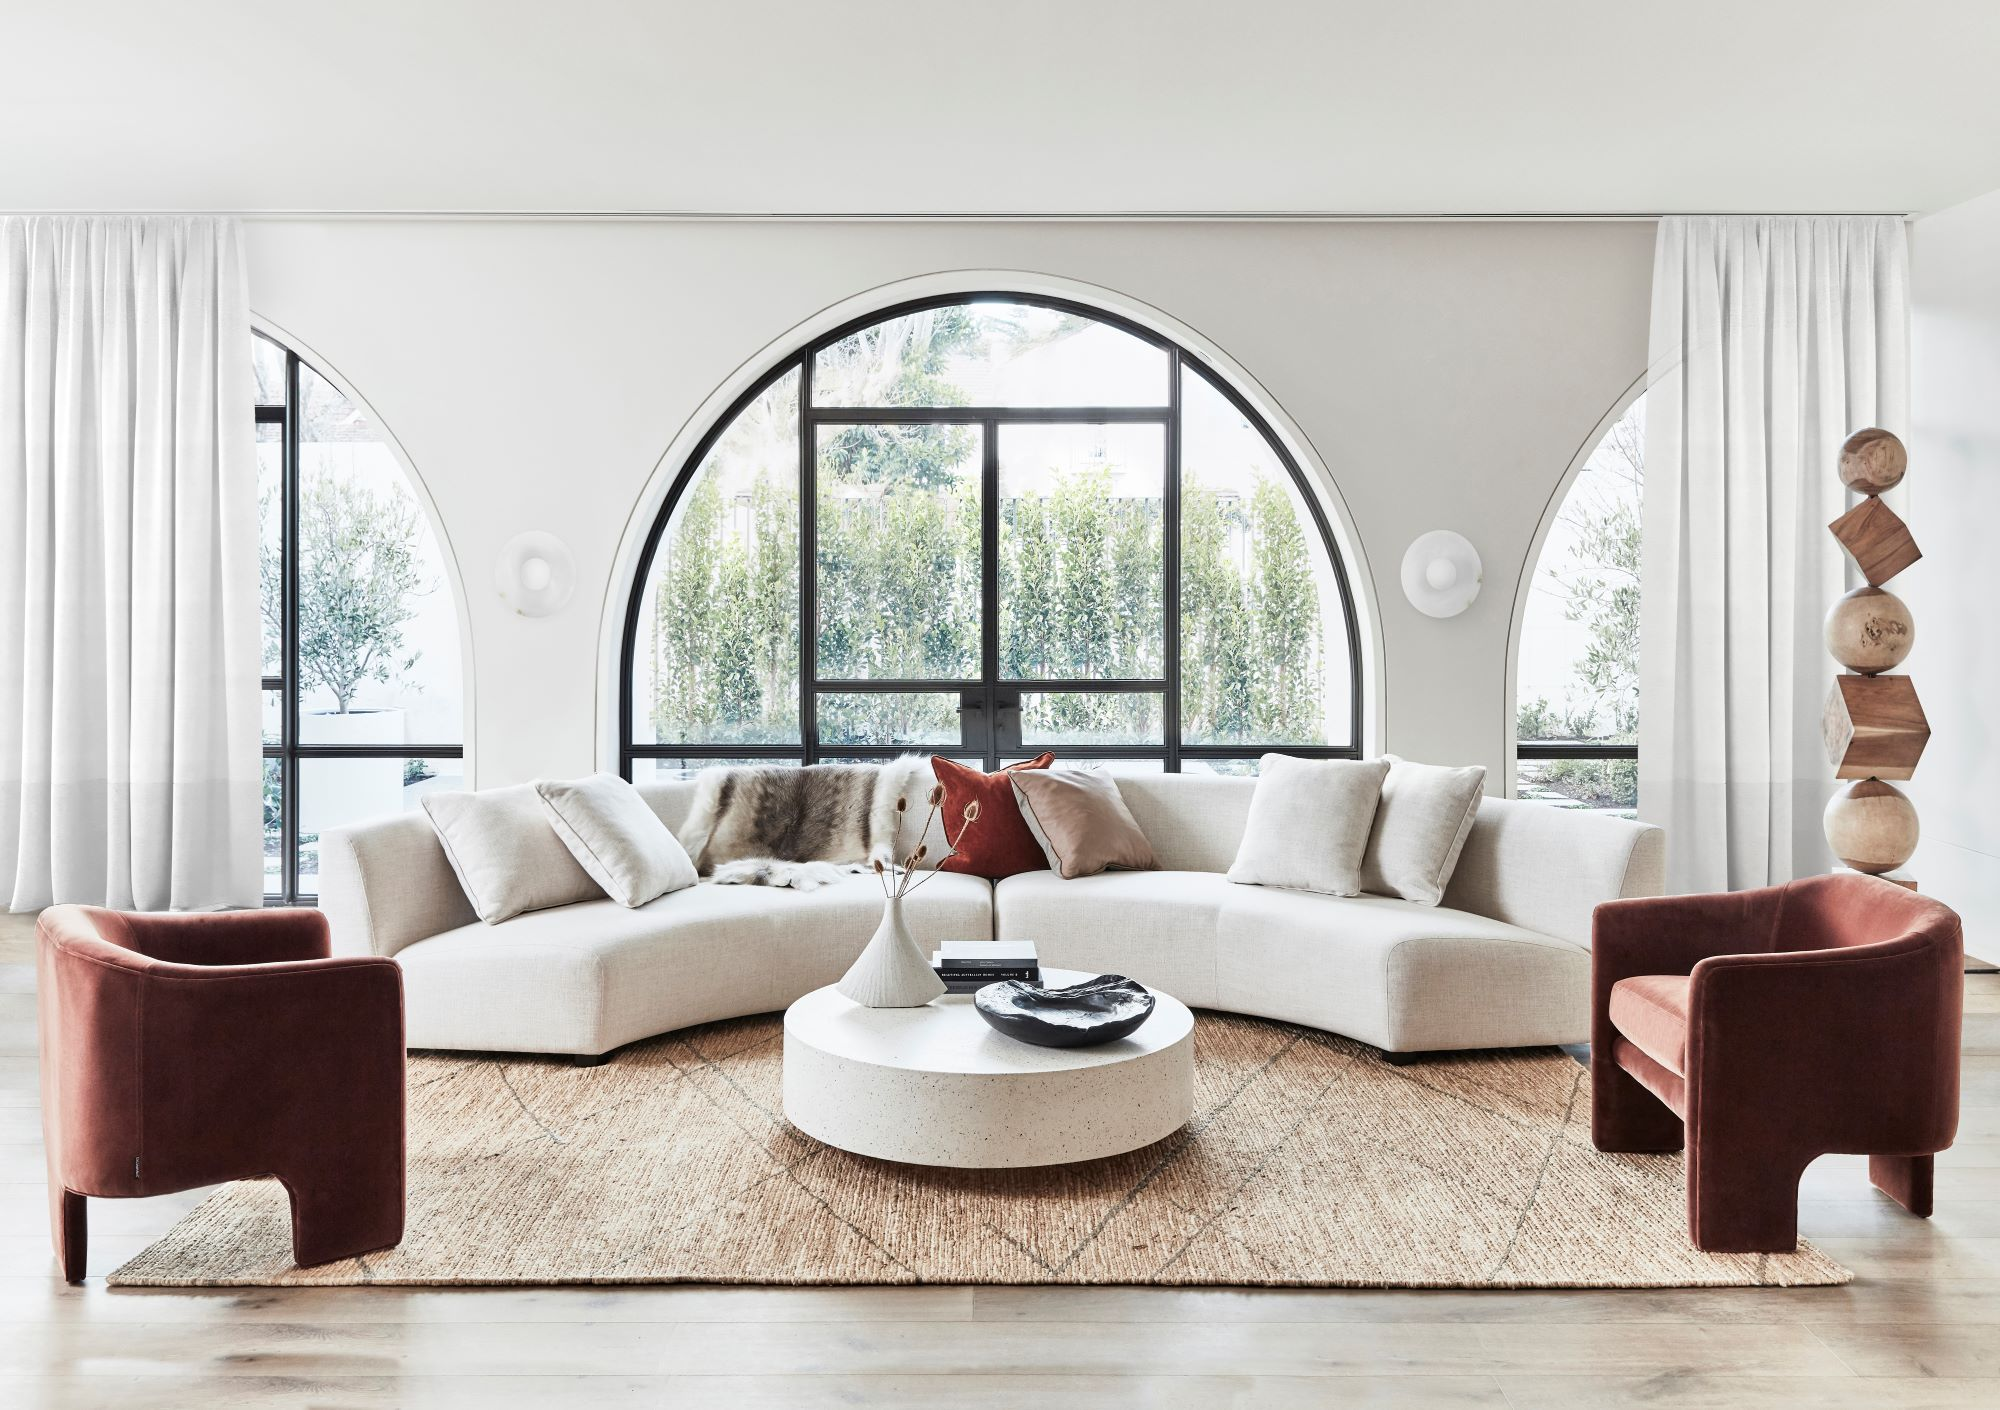 Coco Republic living room styled with sofa and two blush occasional chairs